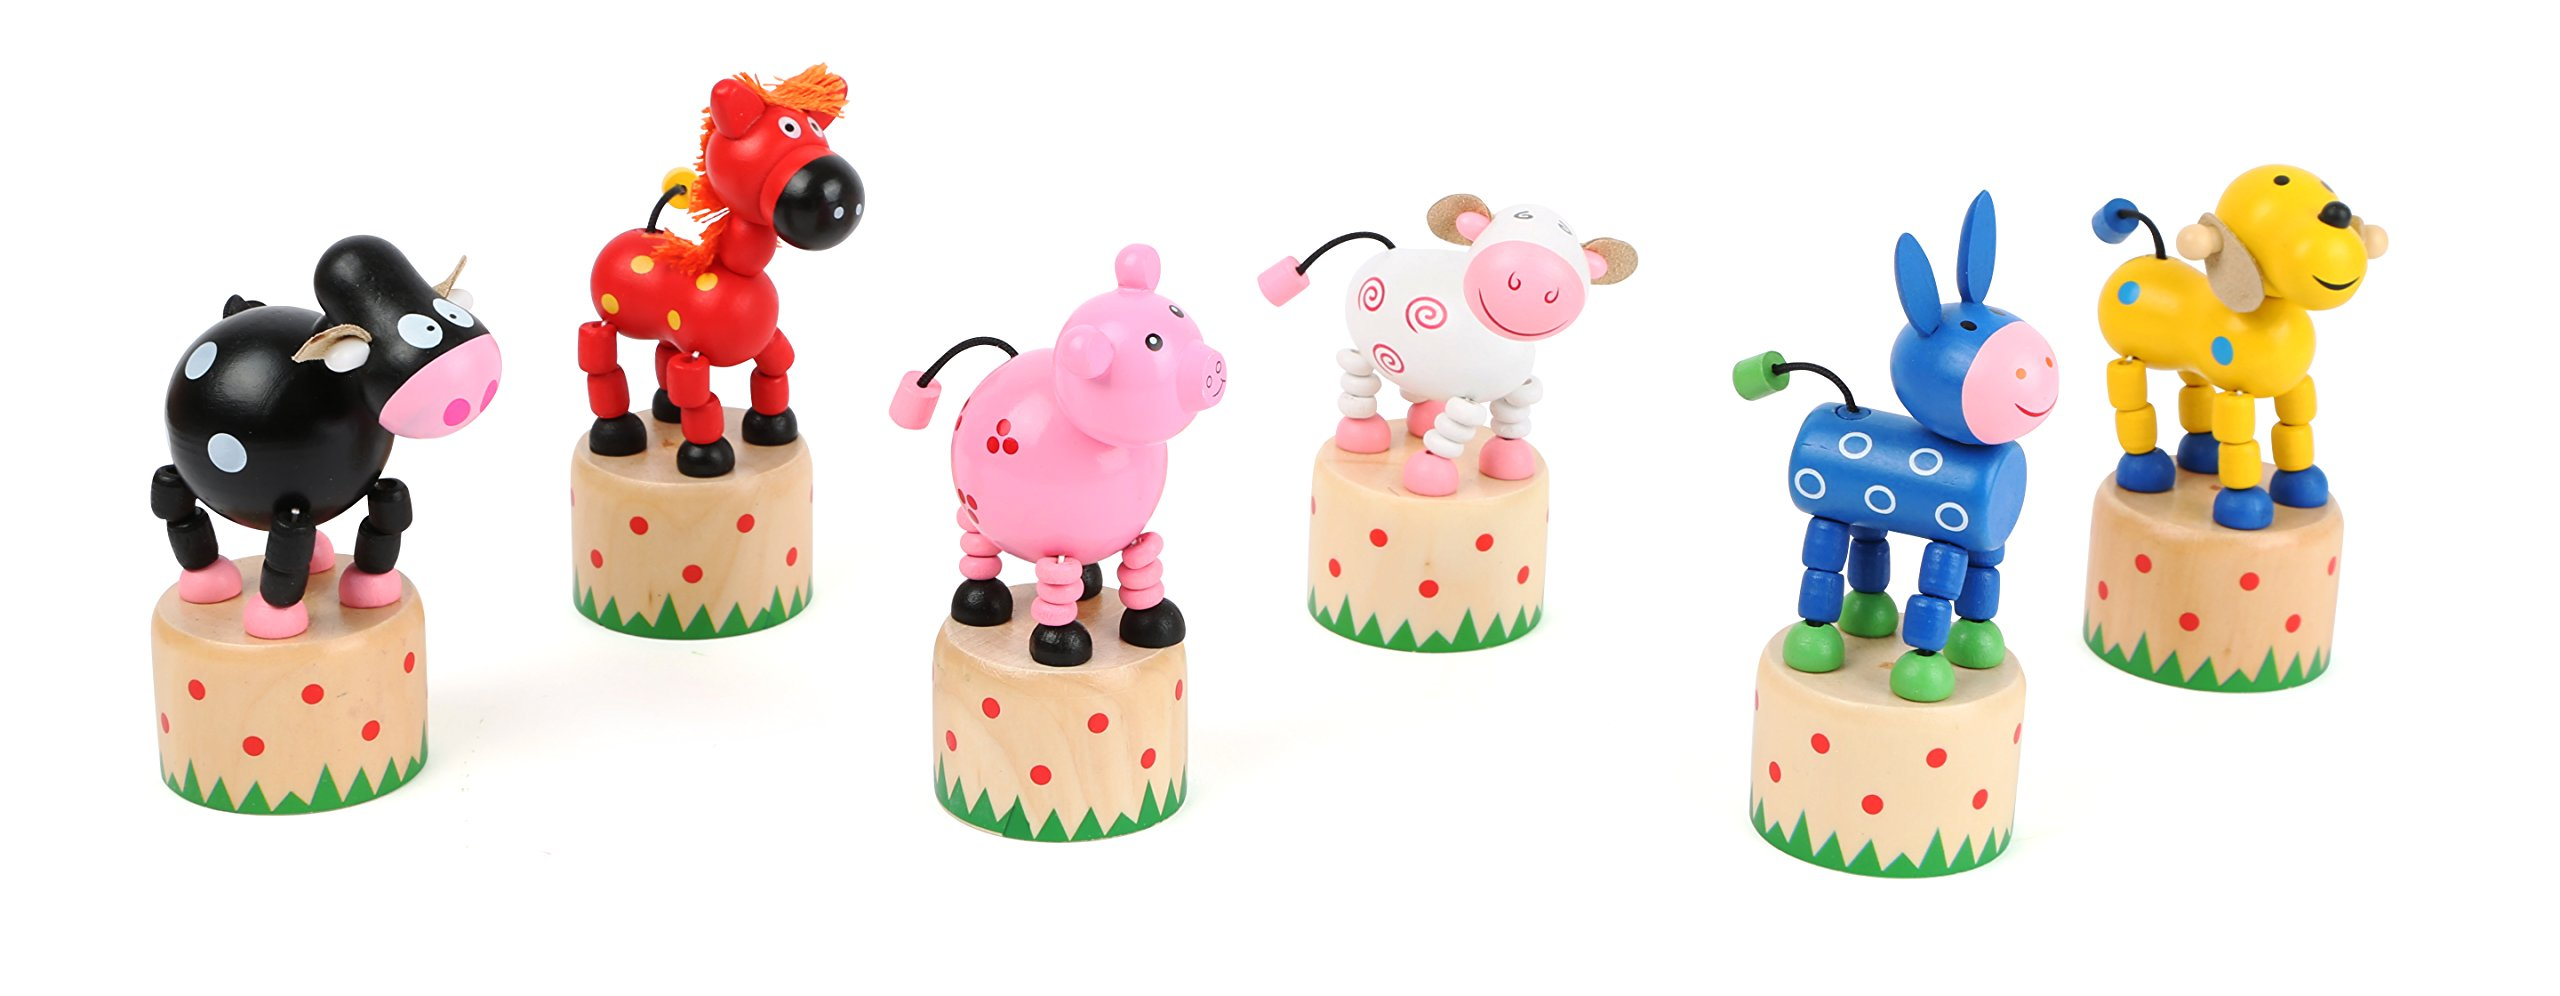 Small Foot 10690 Wooden Press Cute Farm Animals in six Different Designs, Funny Movements at The Push of a Button, Ideal as a Souvenir